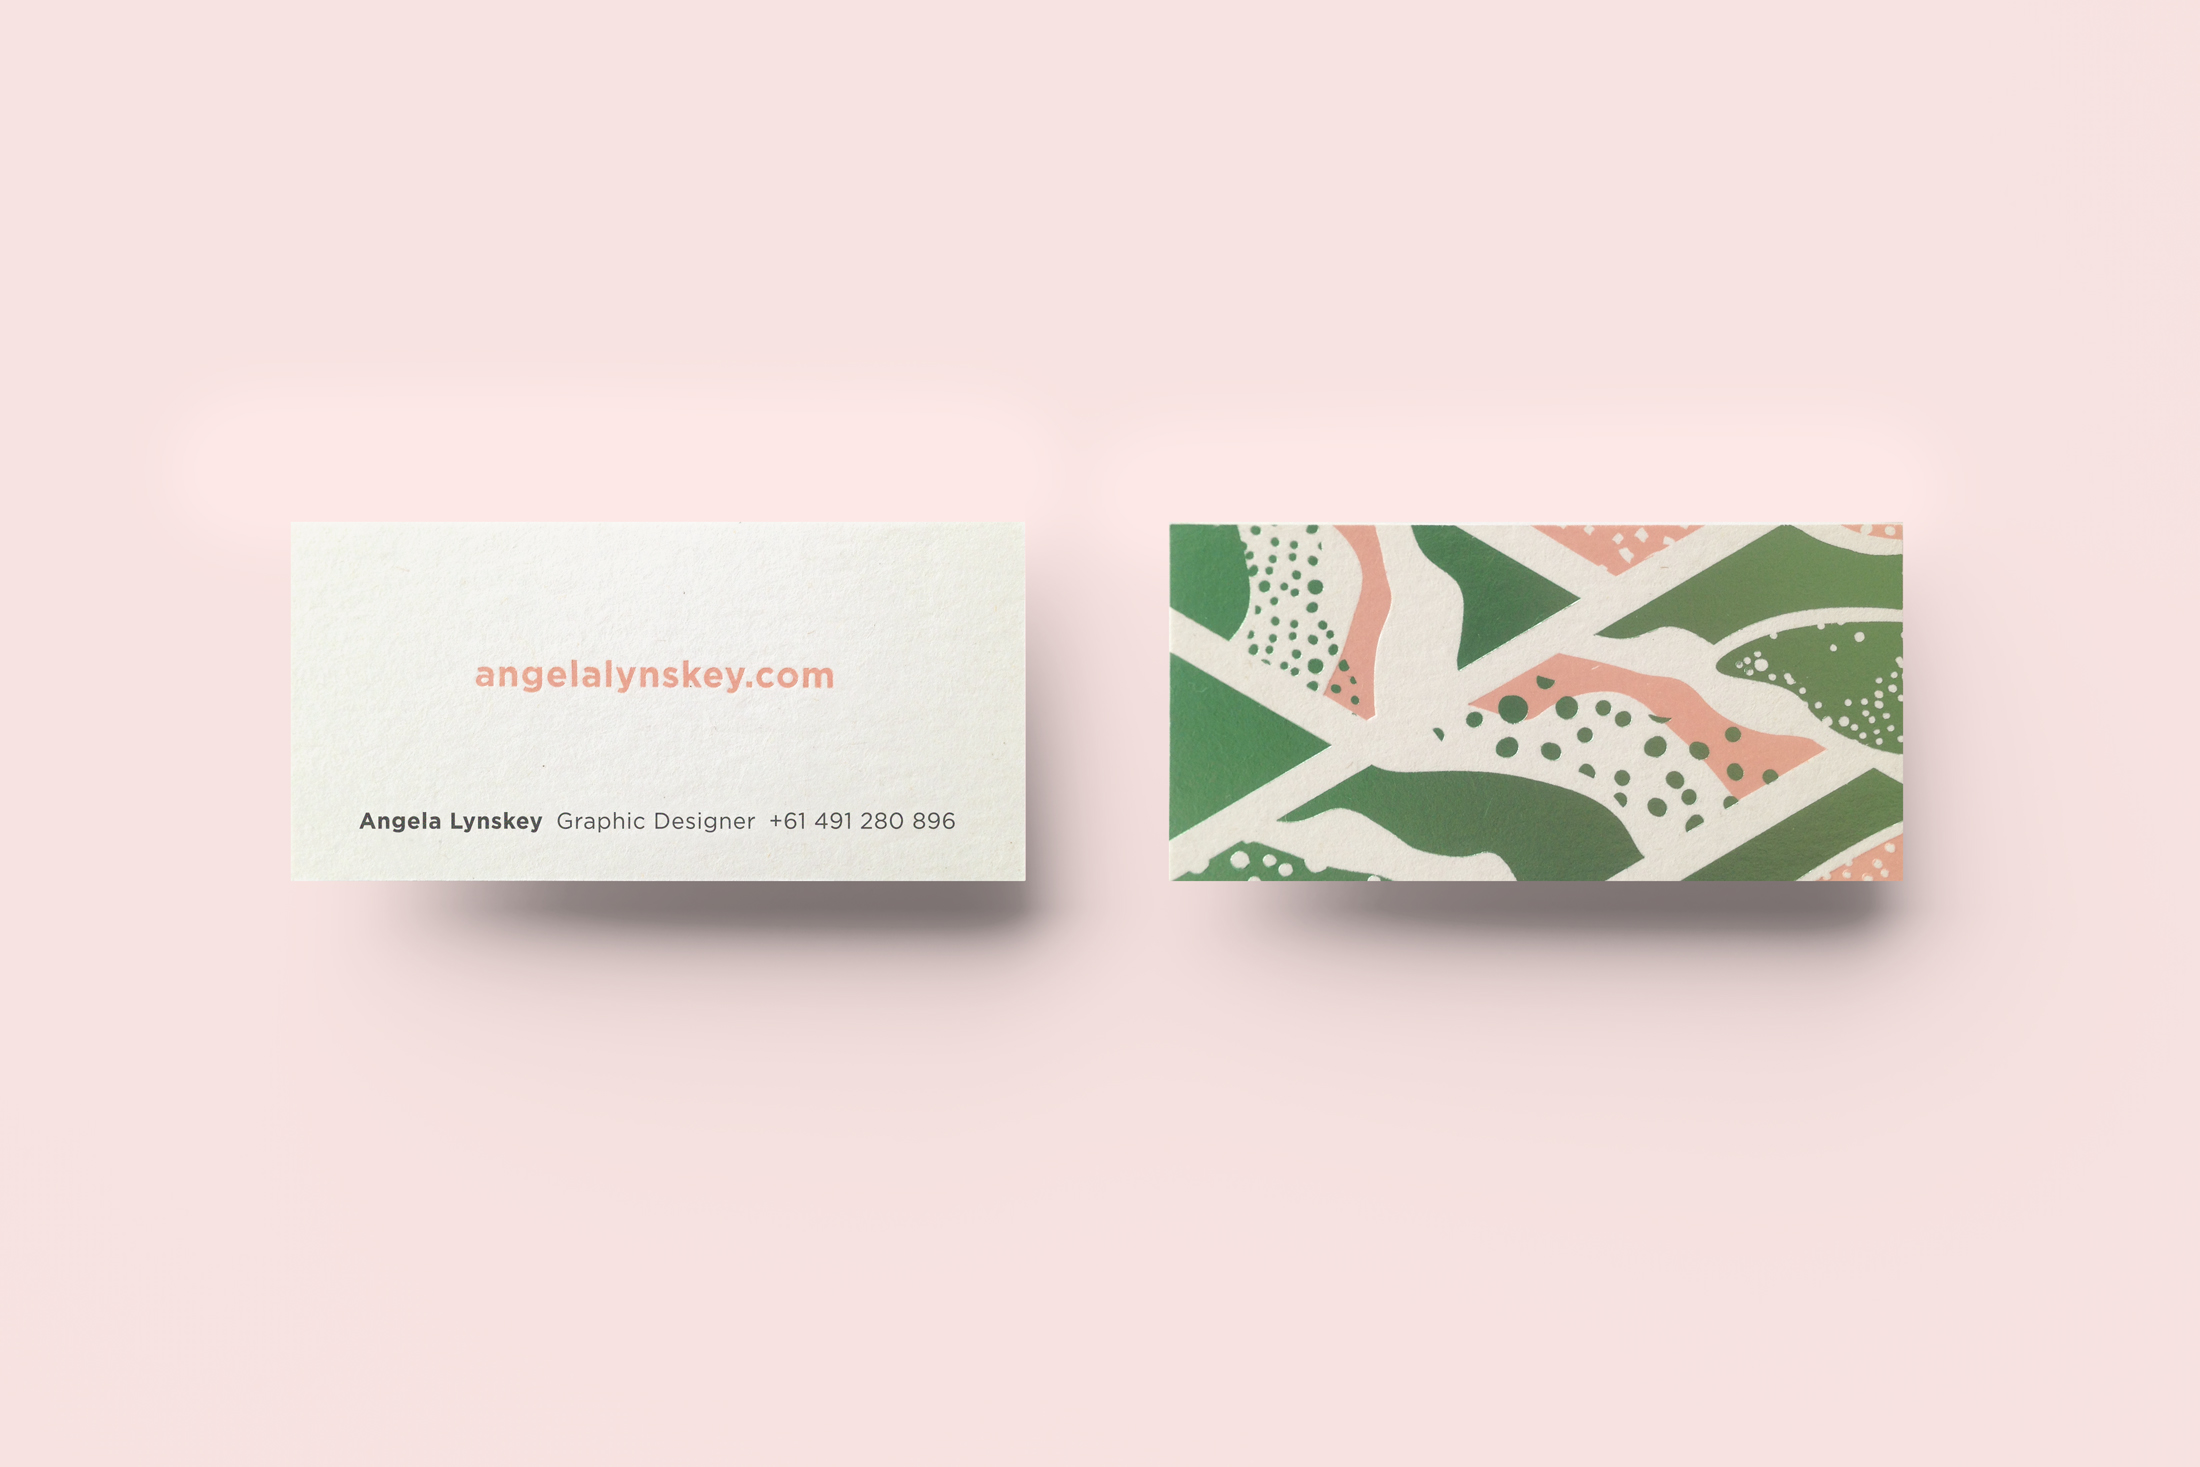 Self promotion: Personal business card.